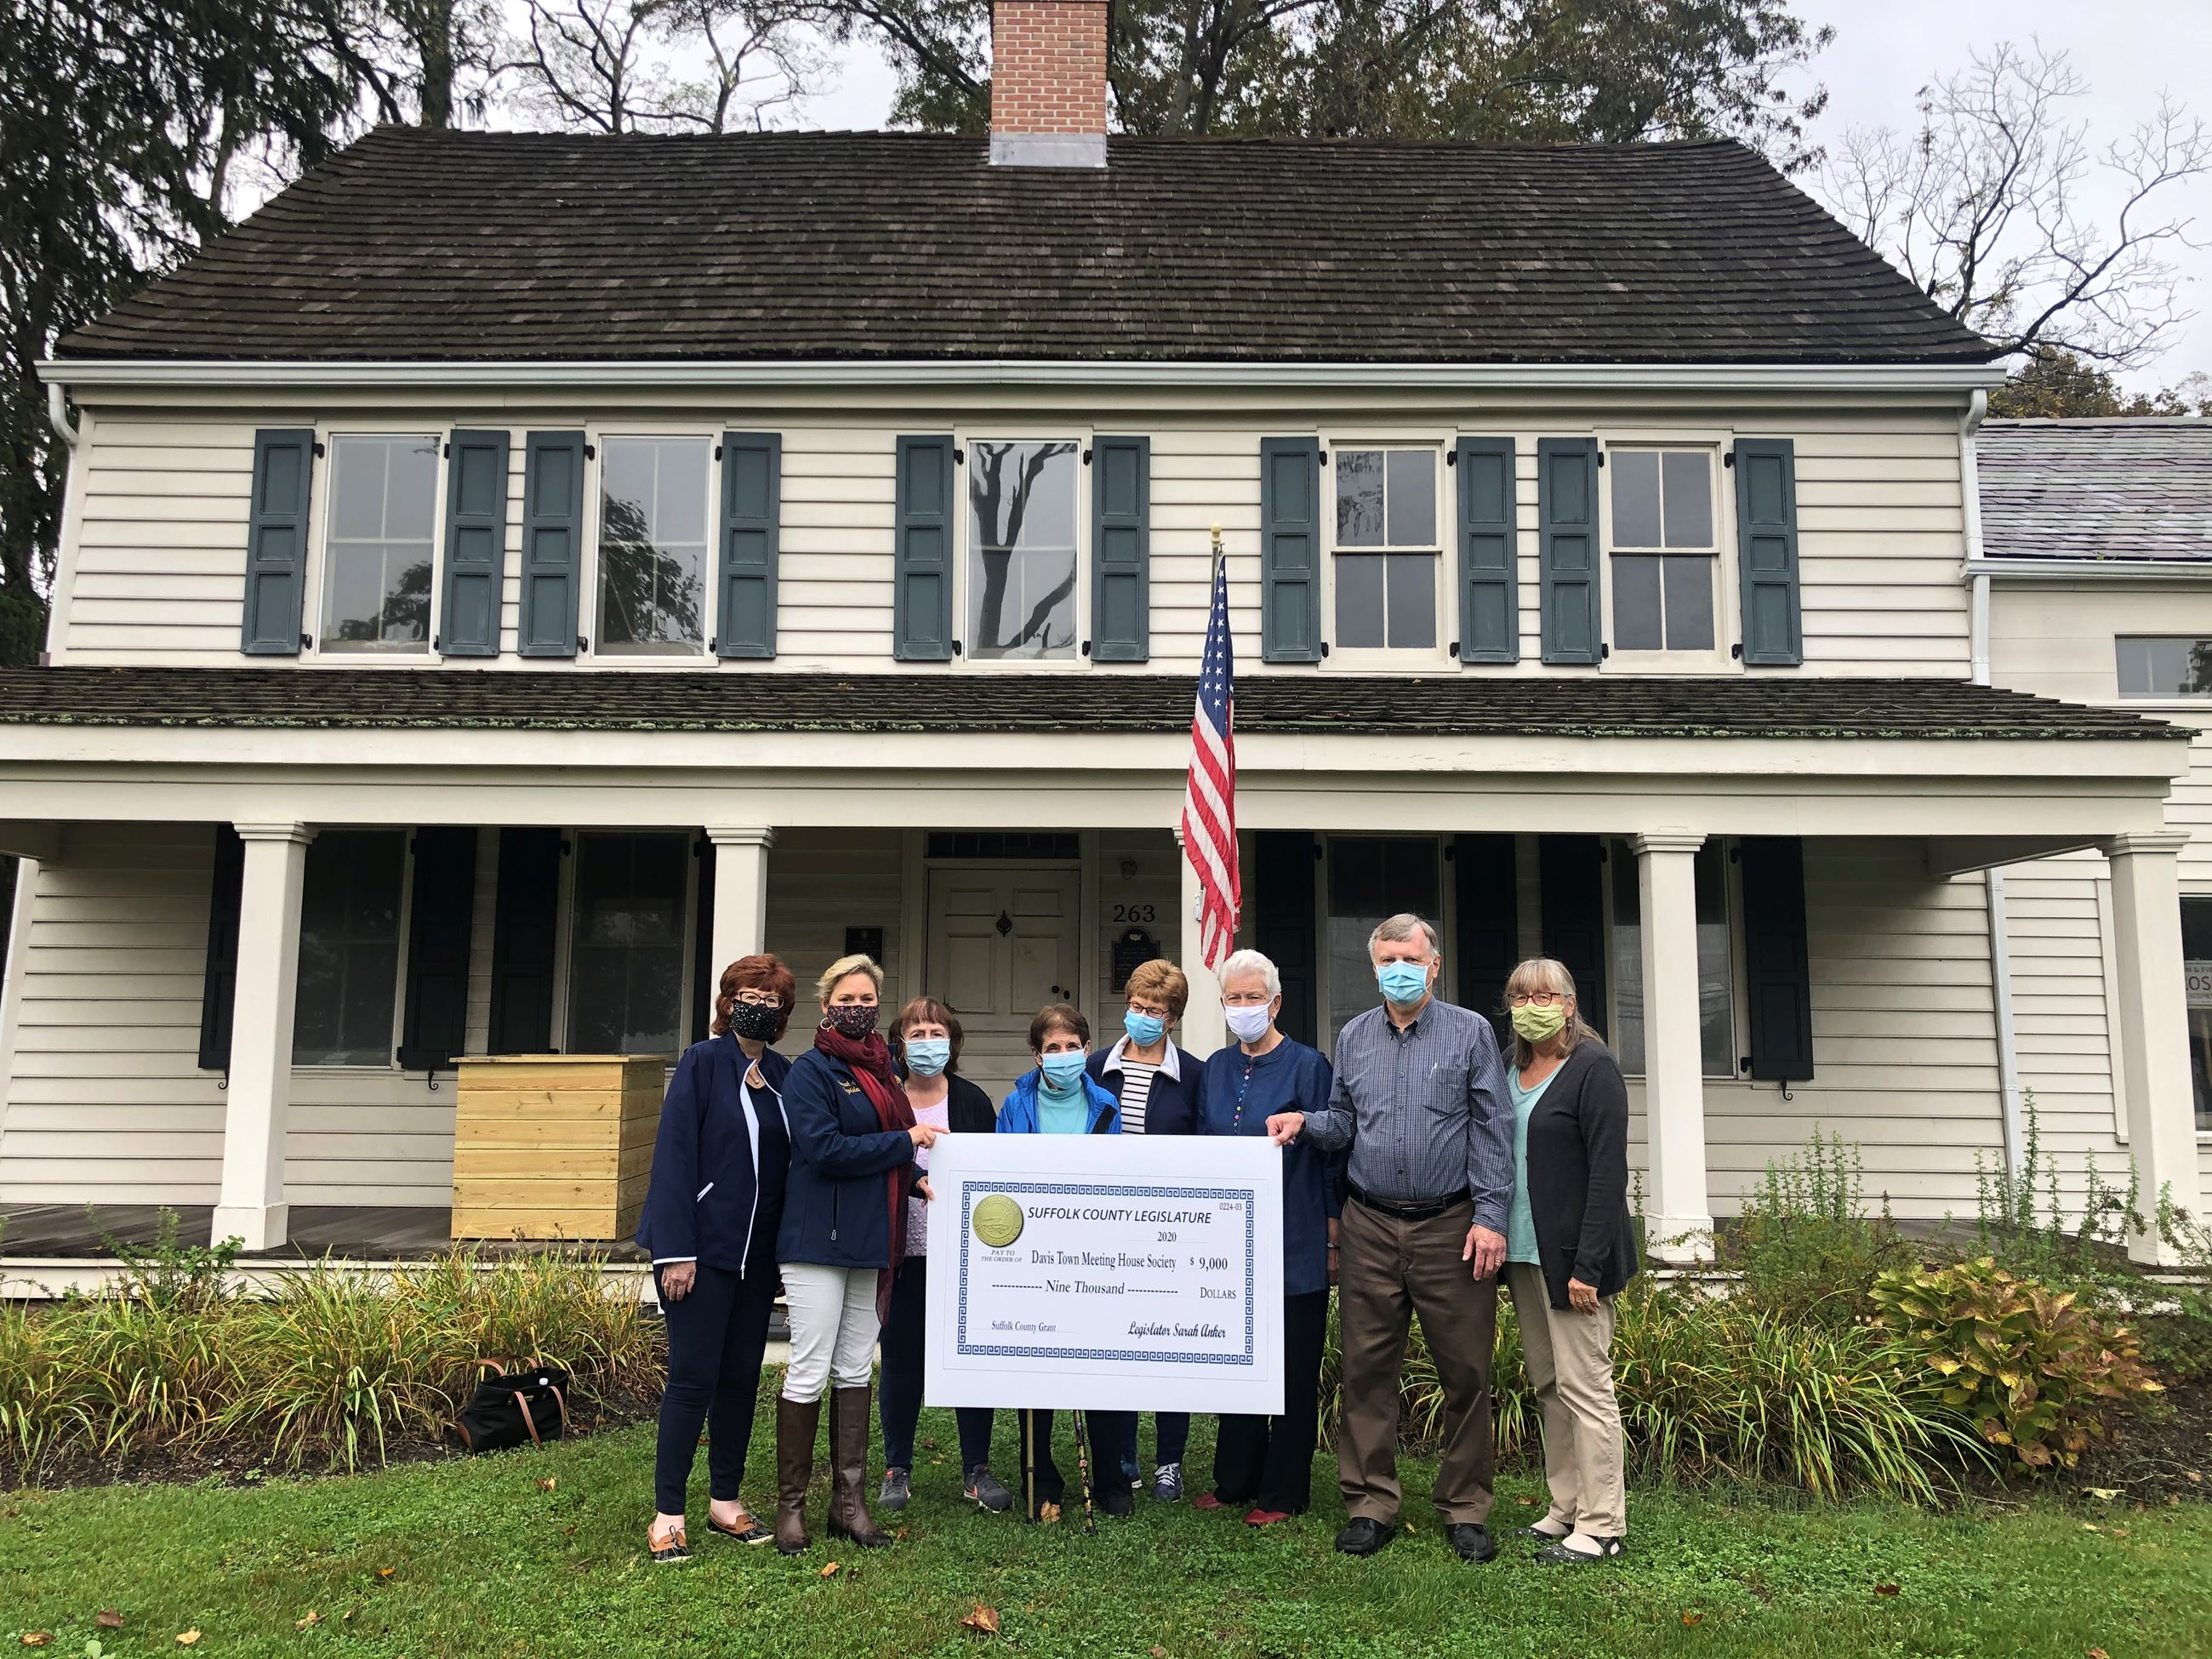 Legislator Anker and Davis Town Meeting House Society Members holding grant check